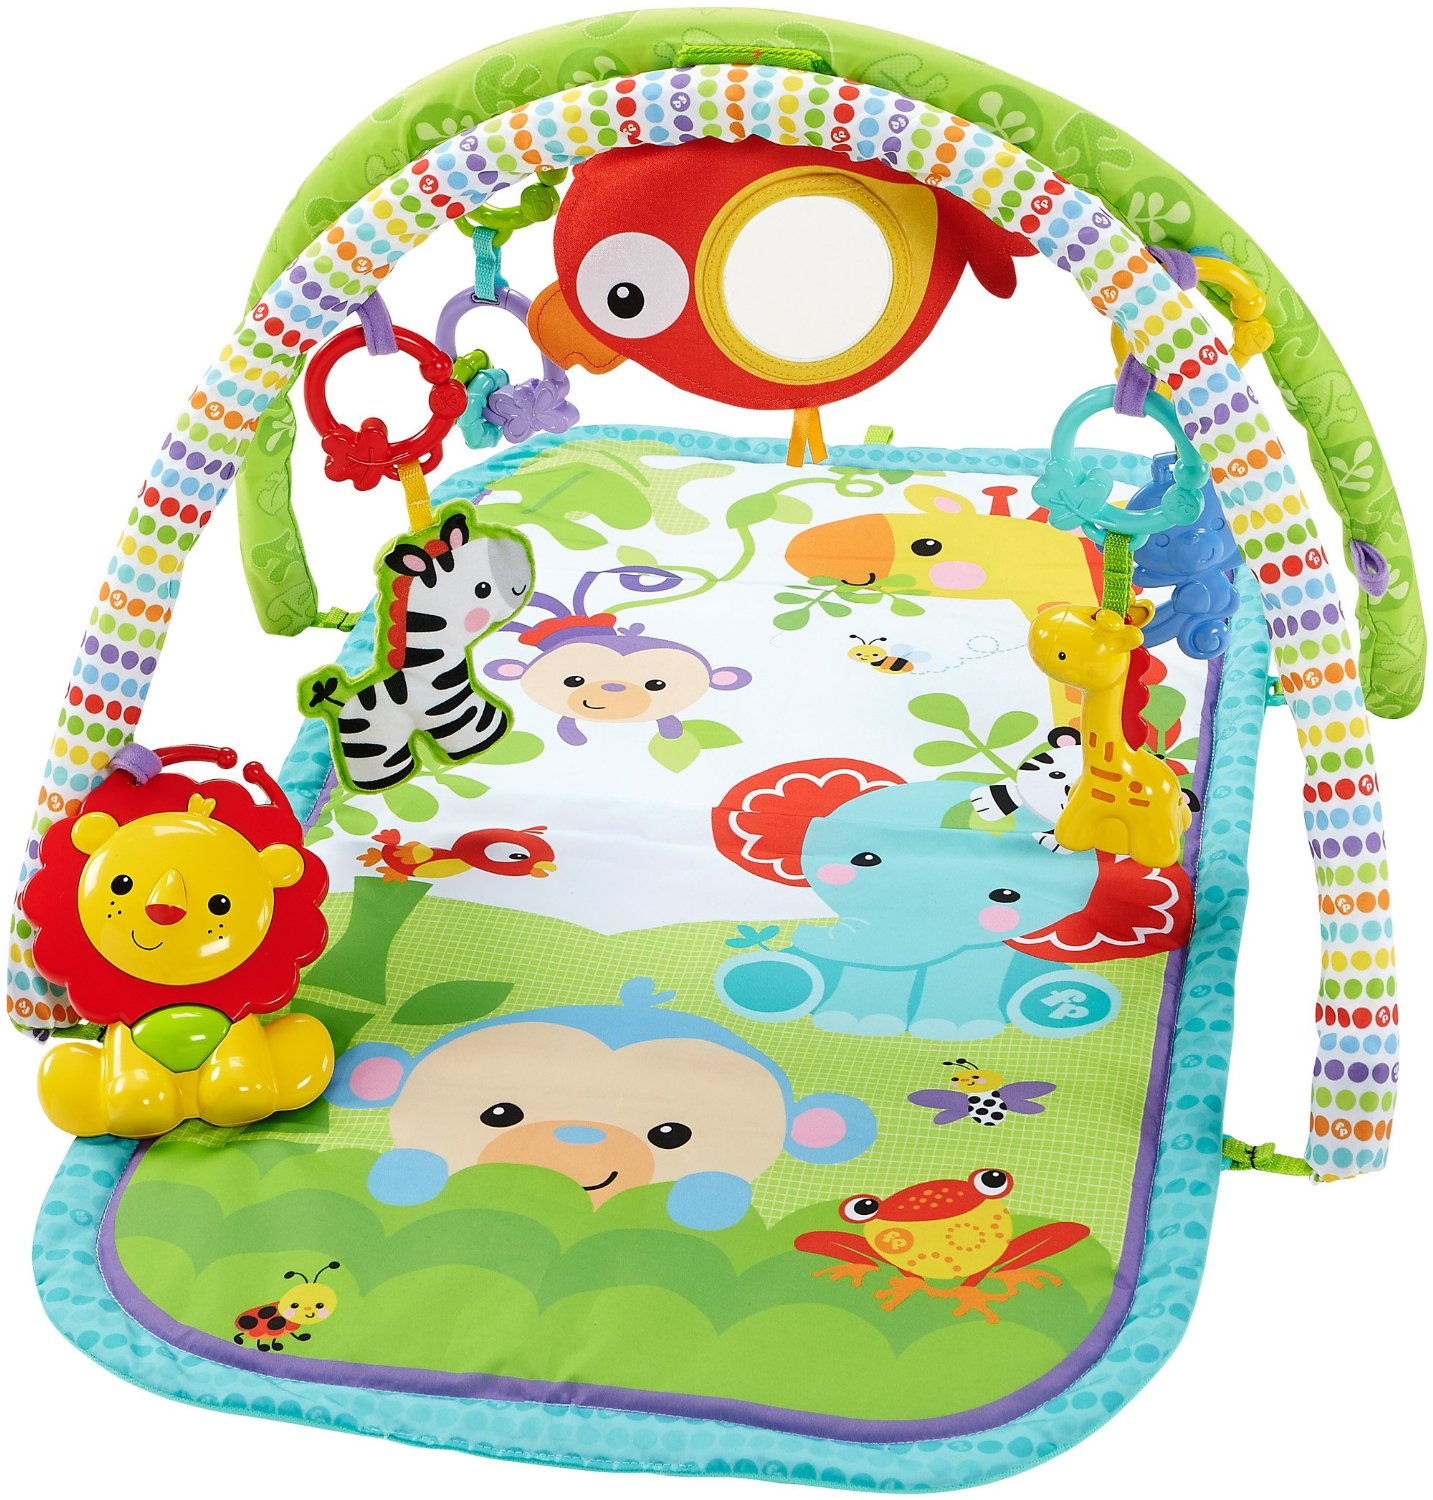 infantino pond gym twist and mat play activity fold pals itm